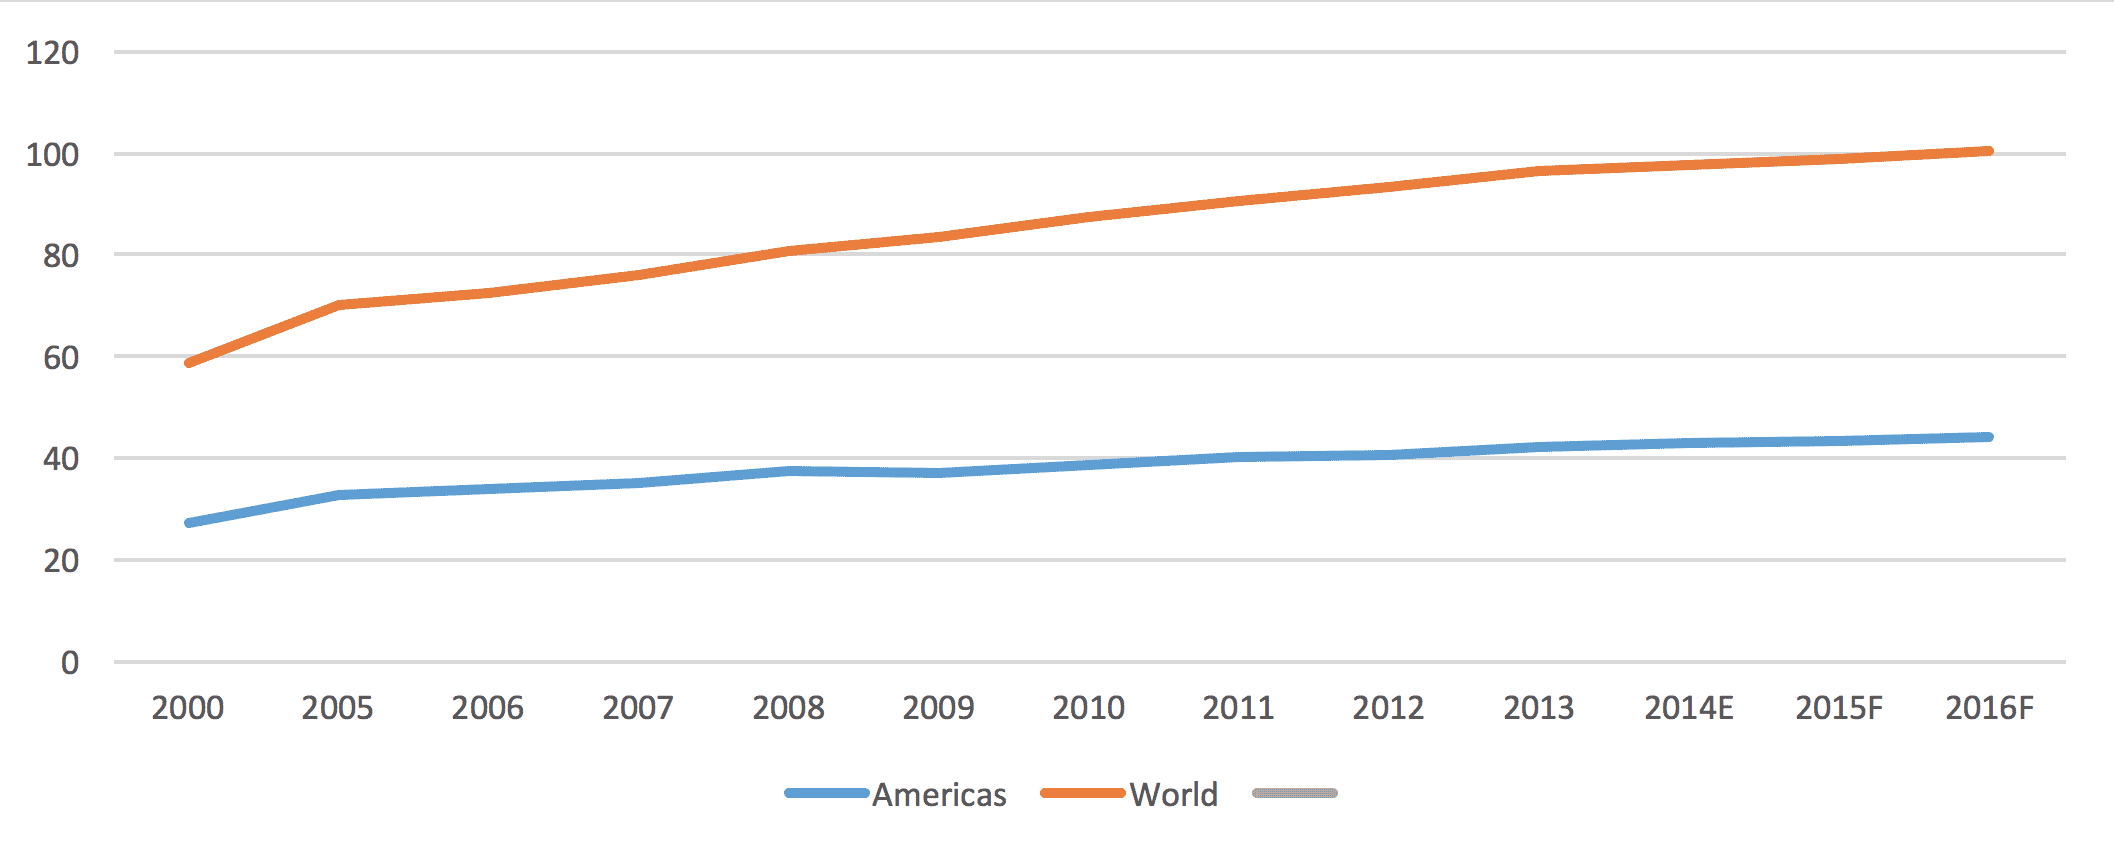 Figure 1. World chicken meat output has grown faster than in the Americas (million tonnes)